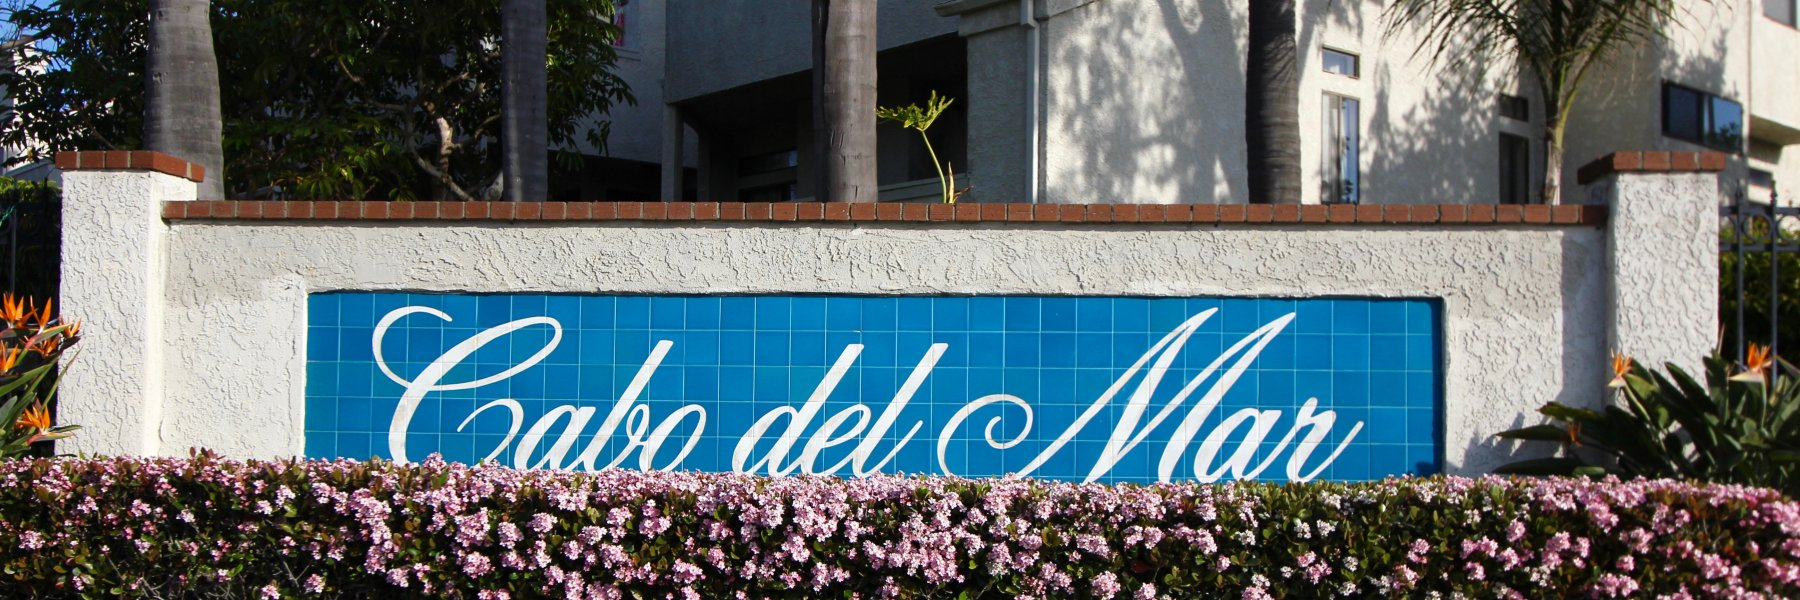 Cabo Del Mar is a community of condos in Huntington Beach California